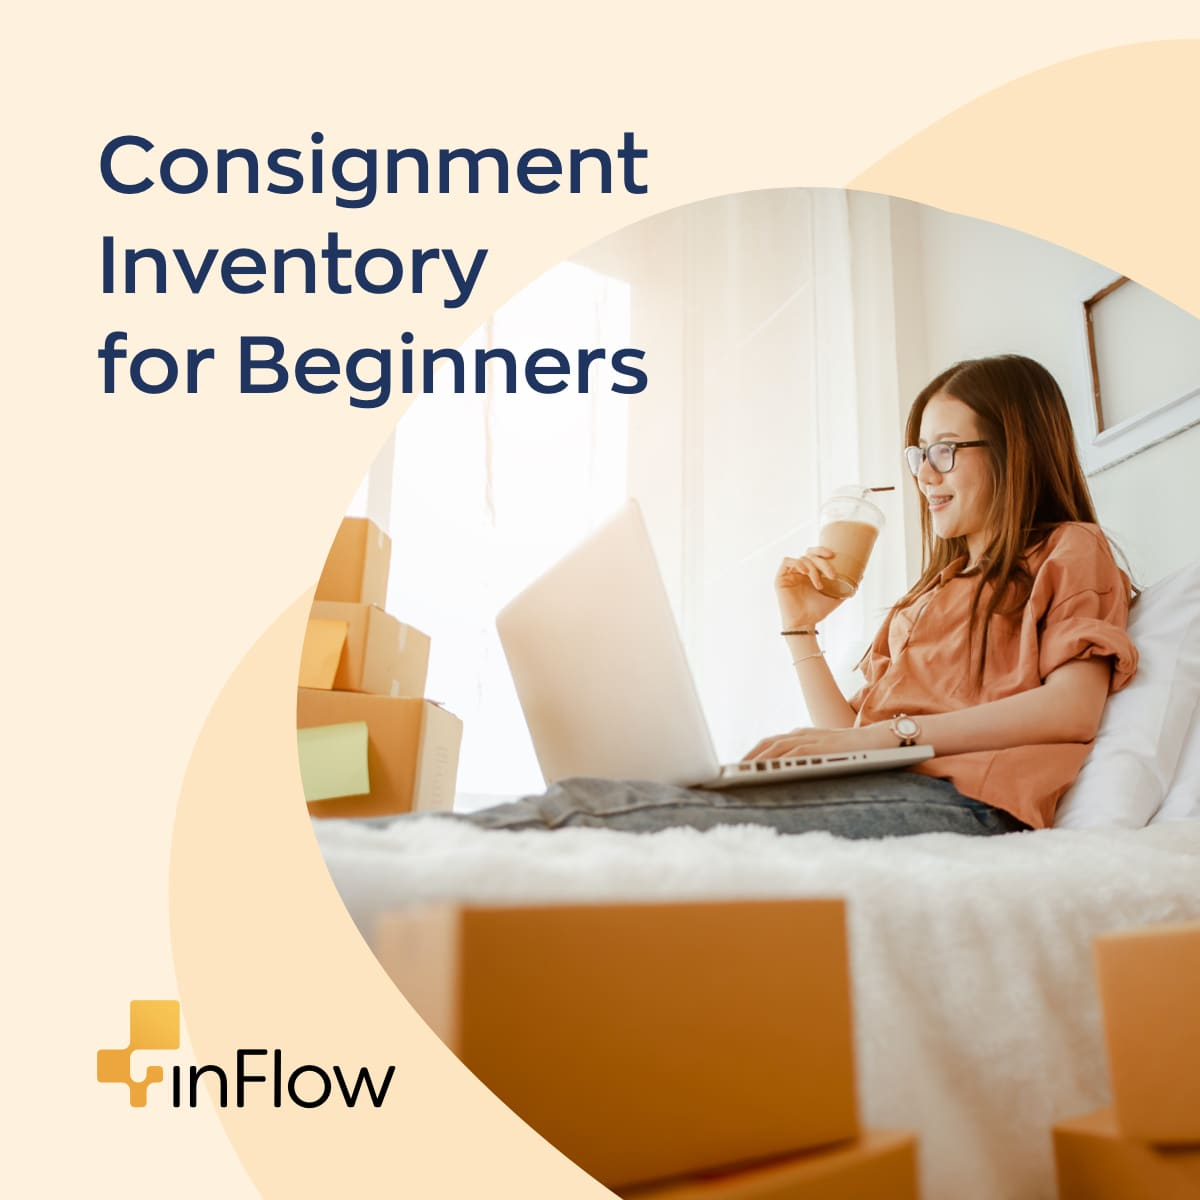 Consignment inventory for beginners